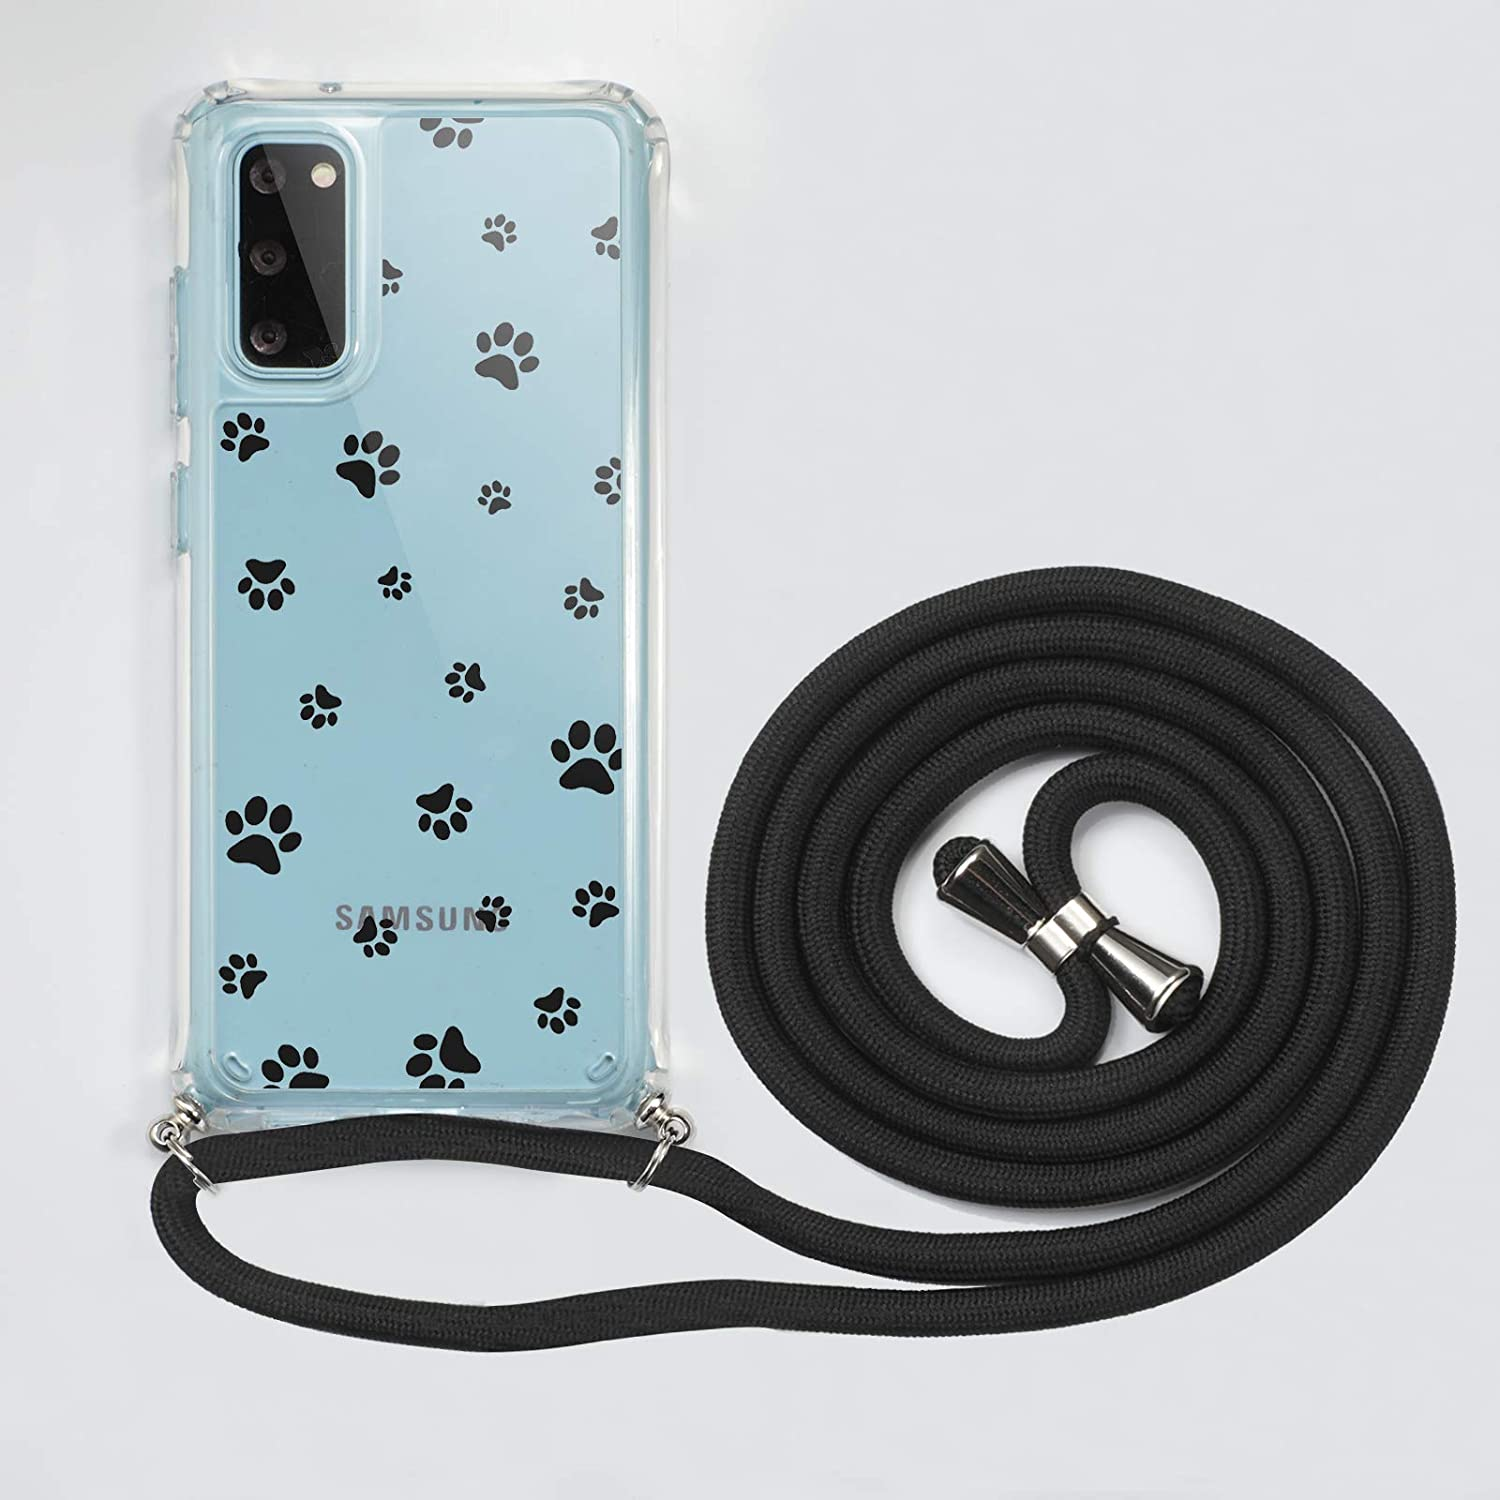 Crossbody Lanyard Phone case for Samsung Galaxy S20 FE,Cute Pattern Clear Design Transparent Hard PC Back+Soft TPU Bumper Anti-Fall Shockproof Protective Cover with Adjustable Neck Strap(Footprint)